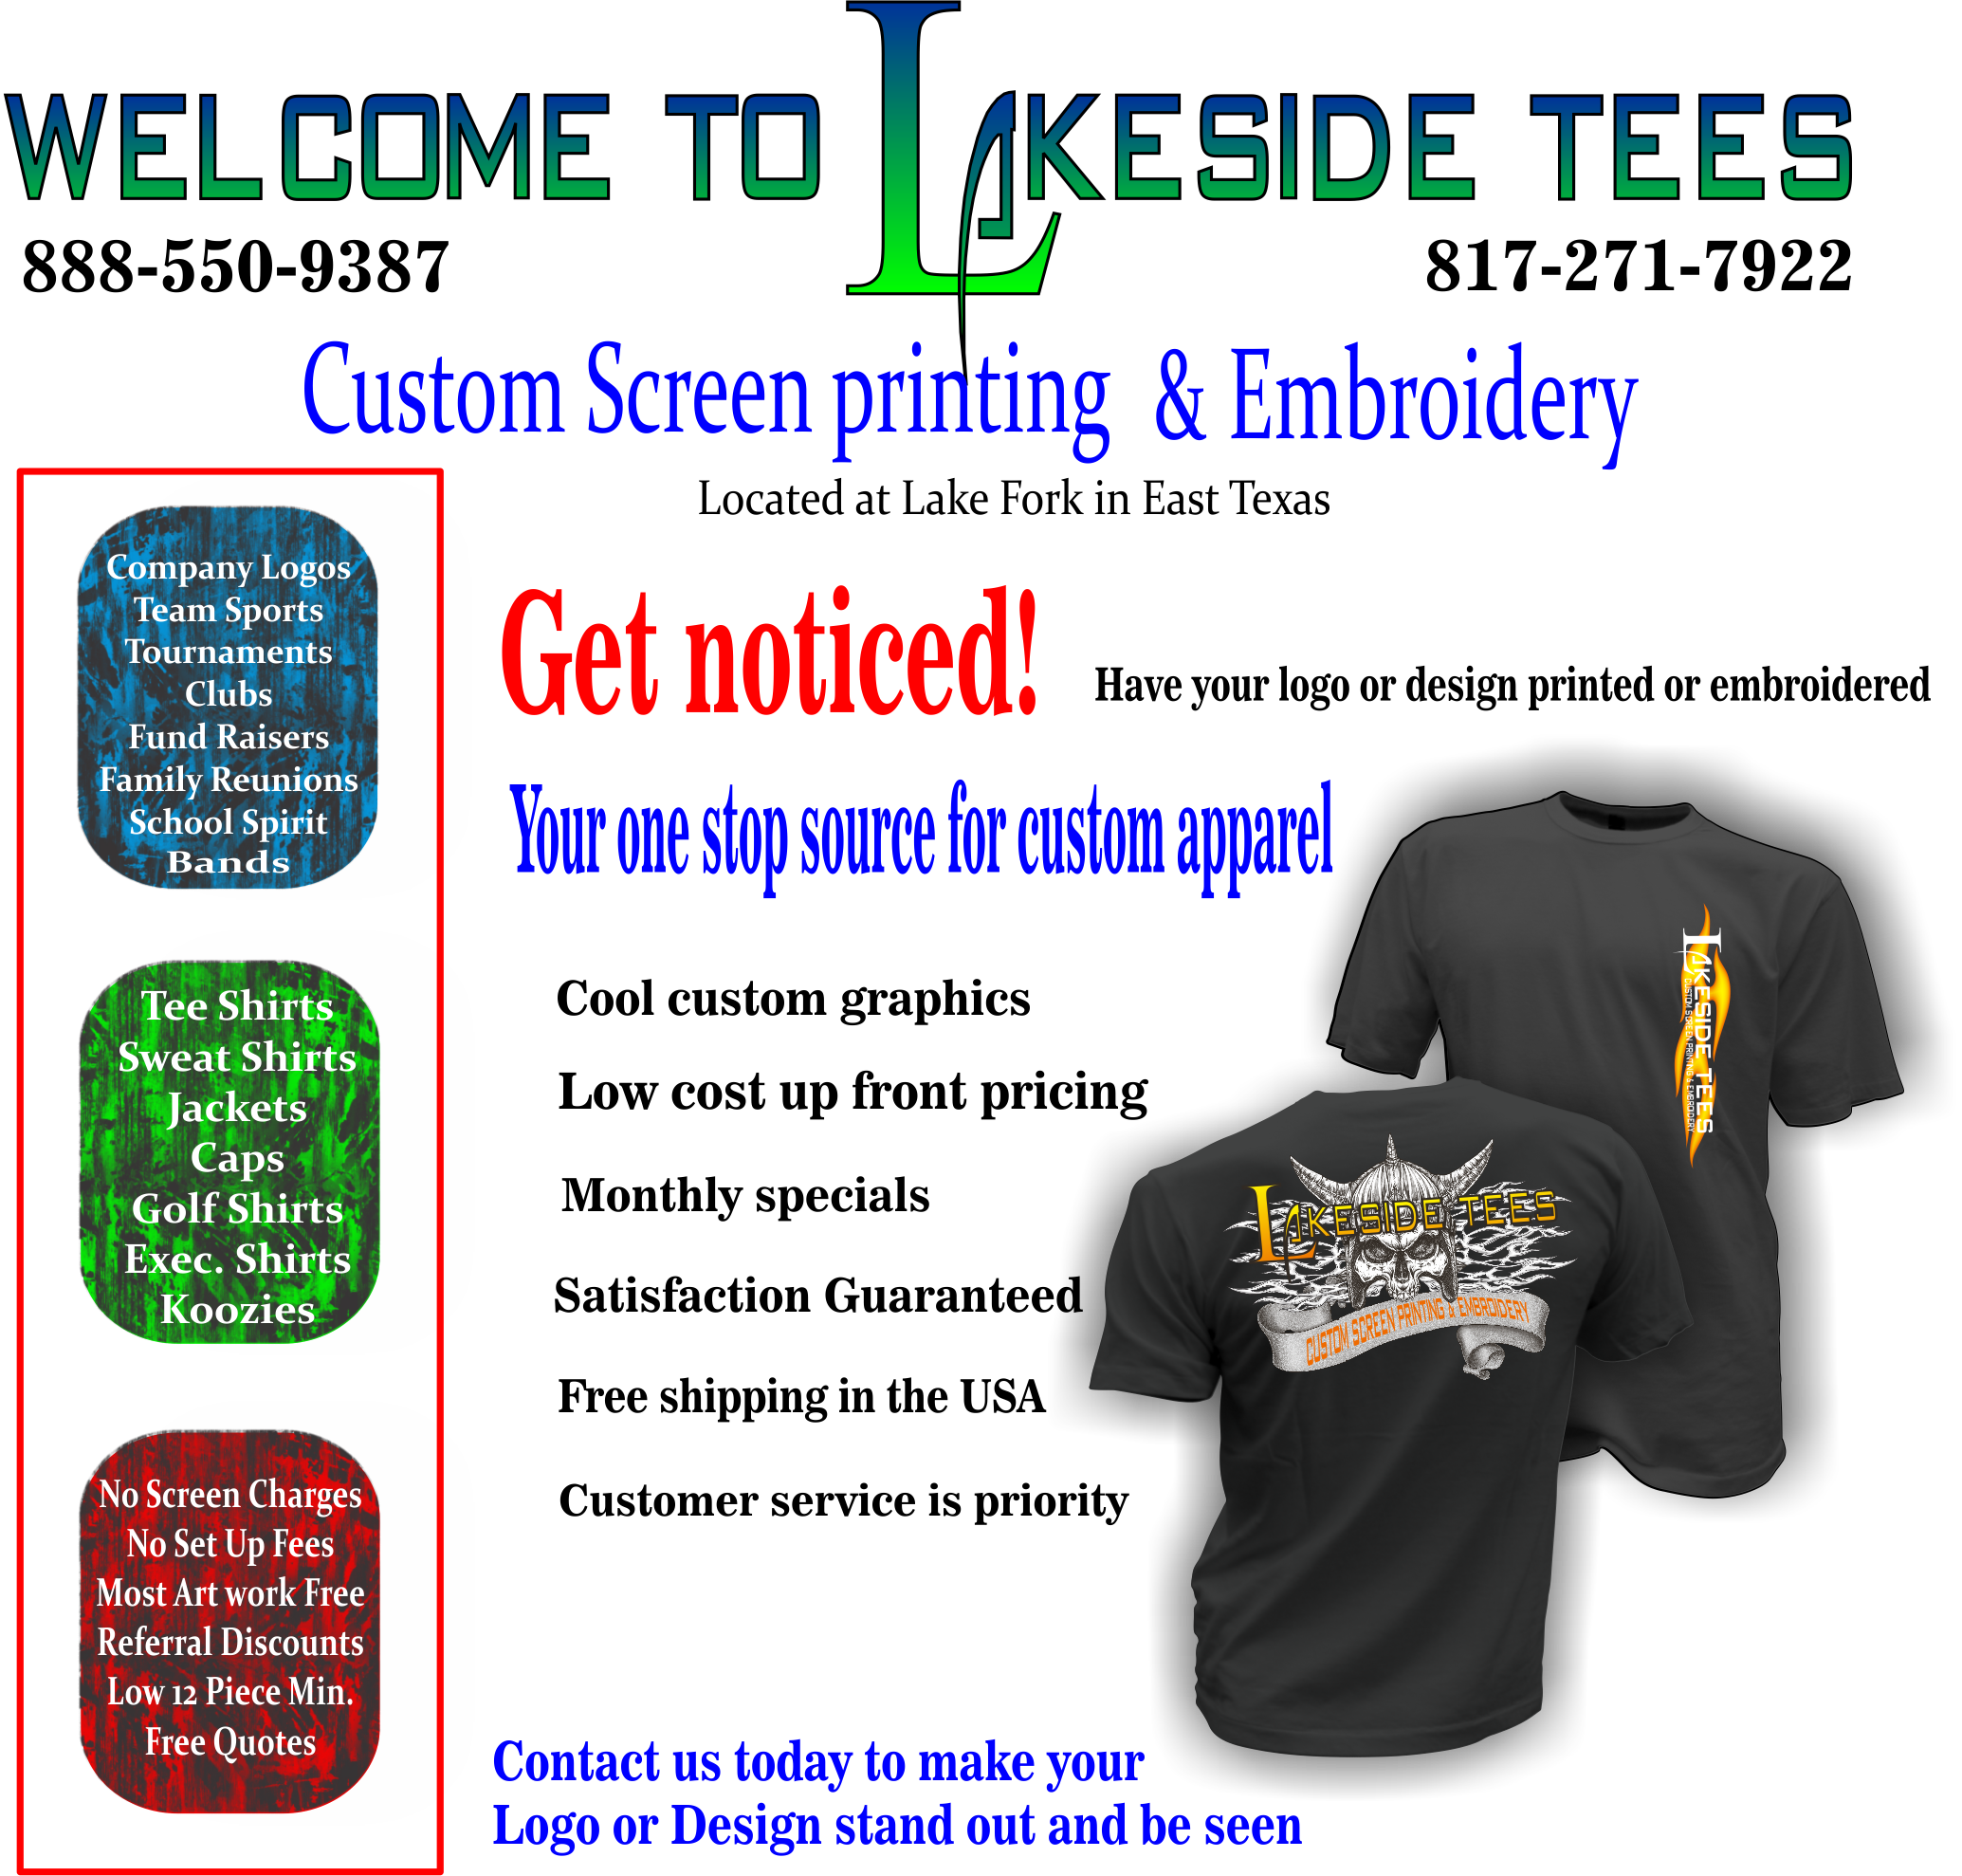 Custom screen printing,tee shirts,cool graphics,shirt printing,screen printing in east texas,embroidery